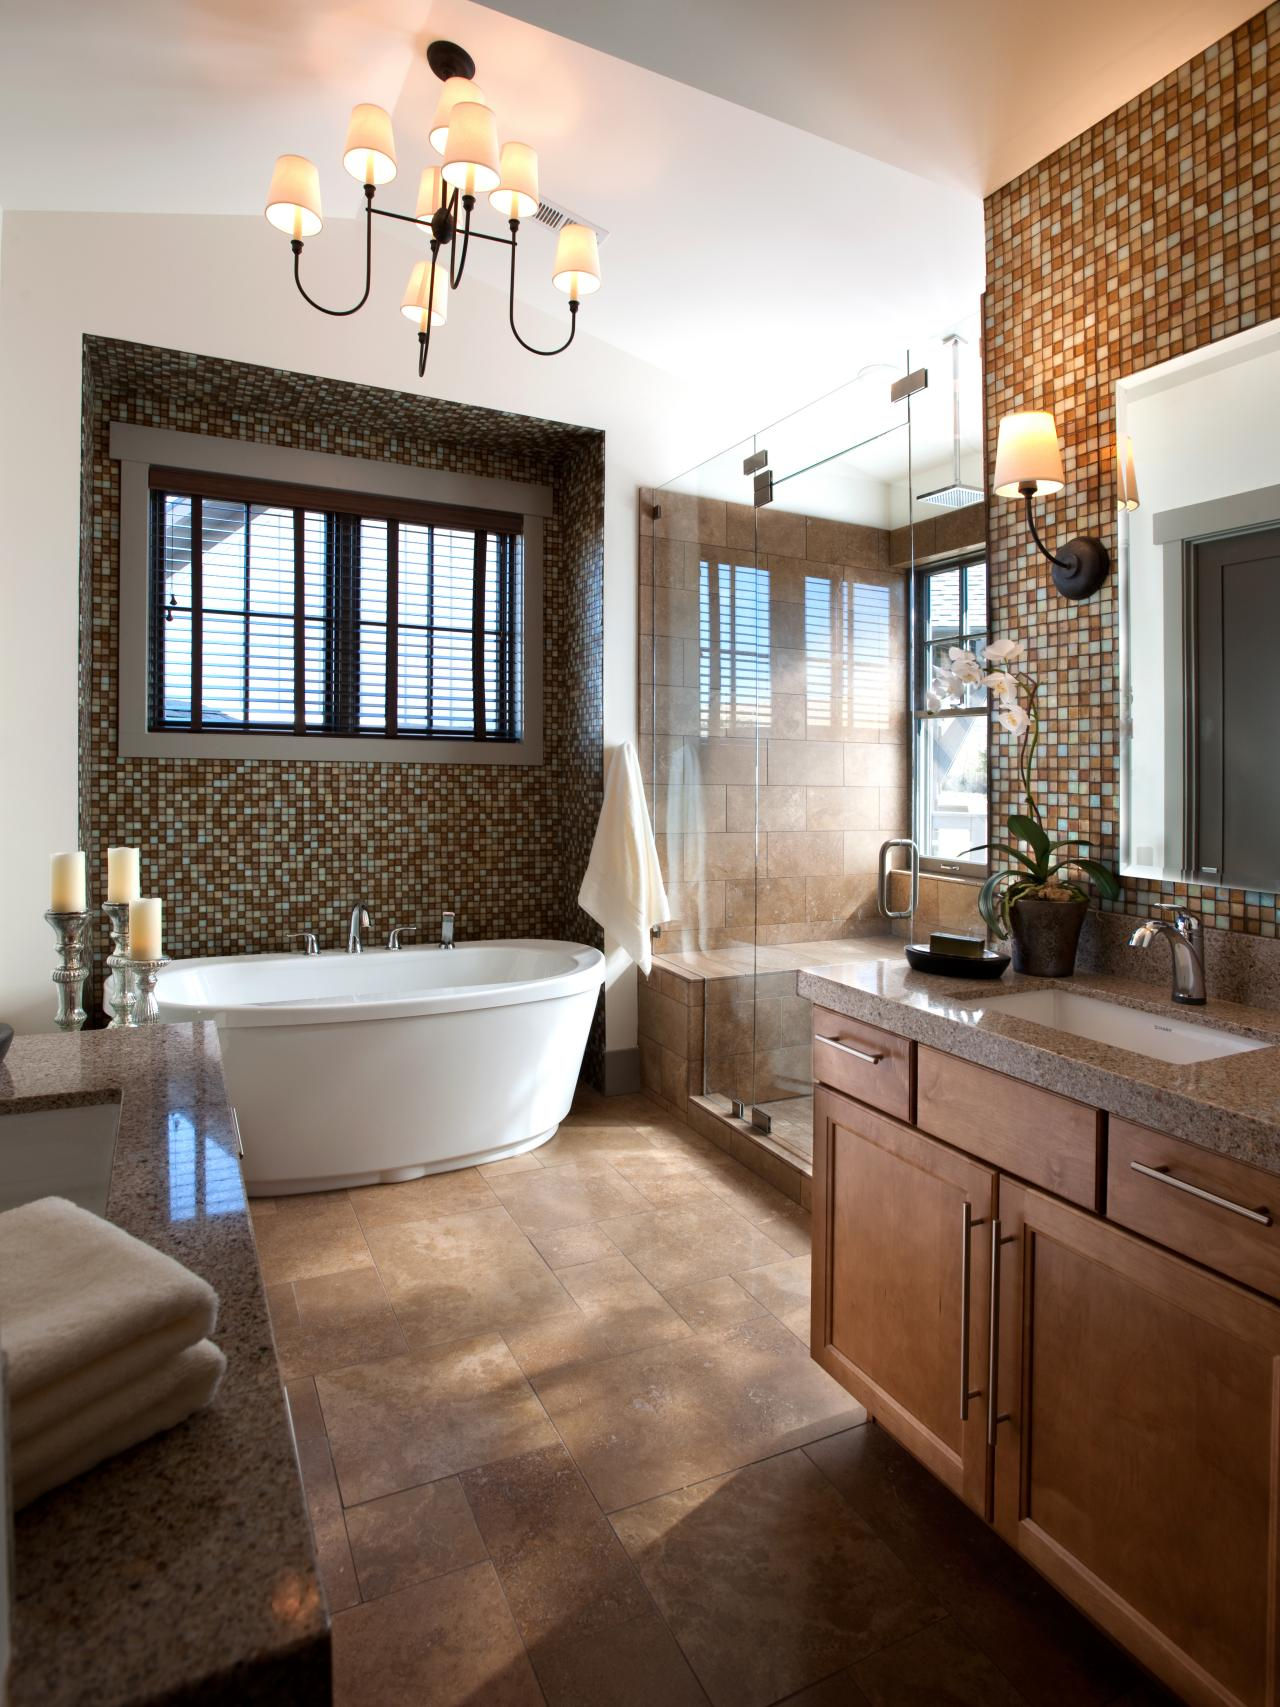 Hgtv dream home 2012 master bathroom pictures and video for Dream bathrooms